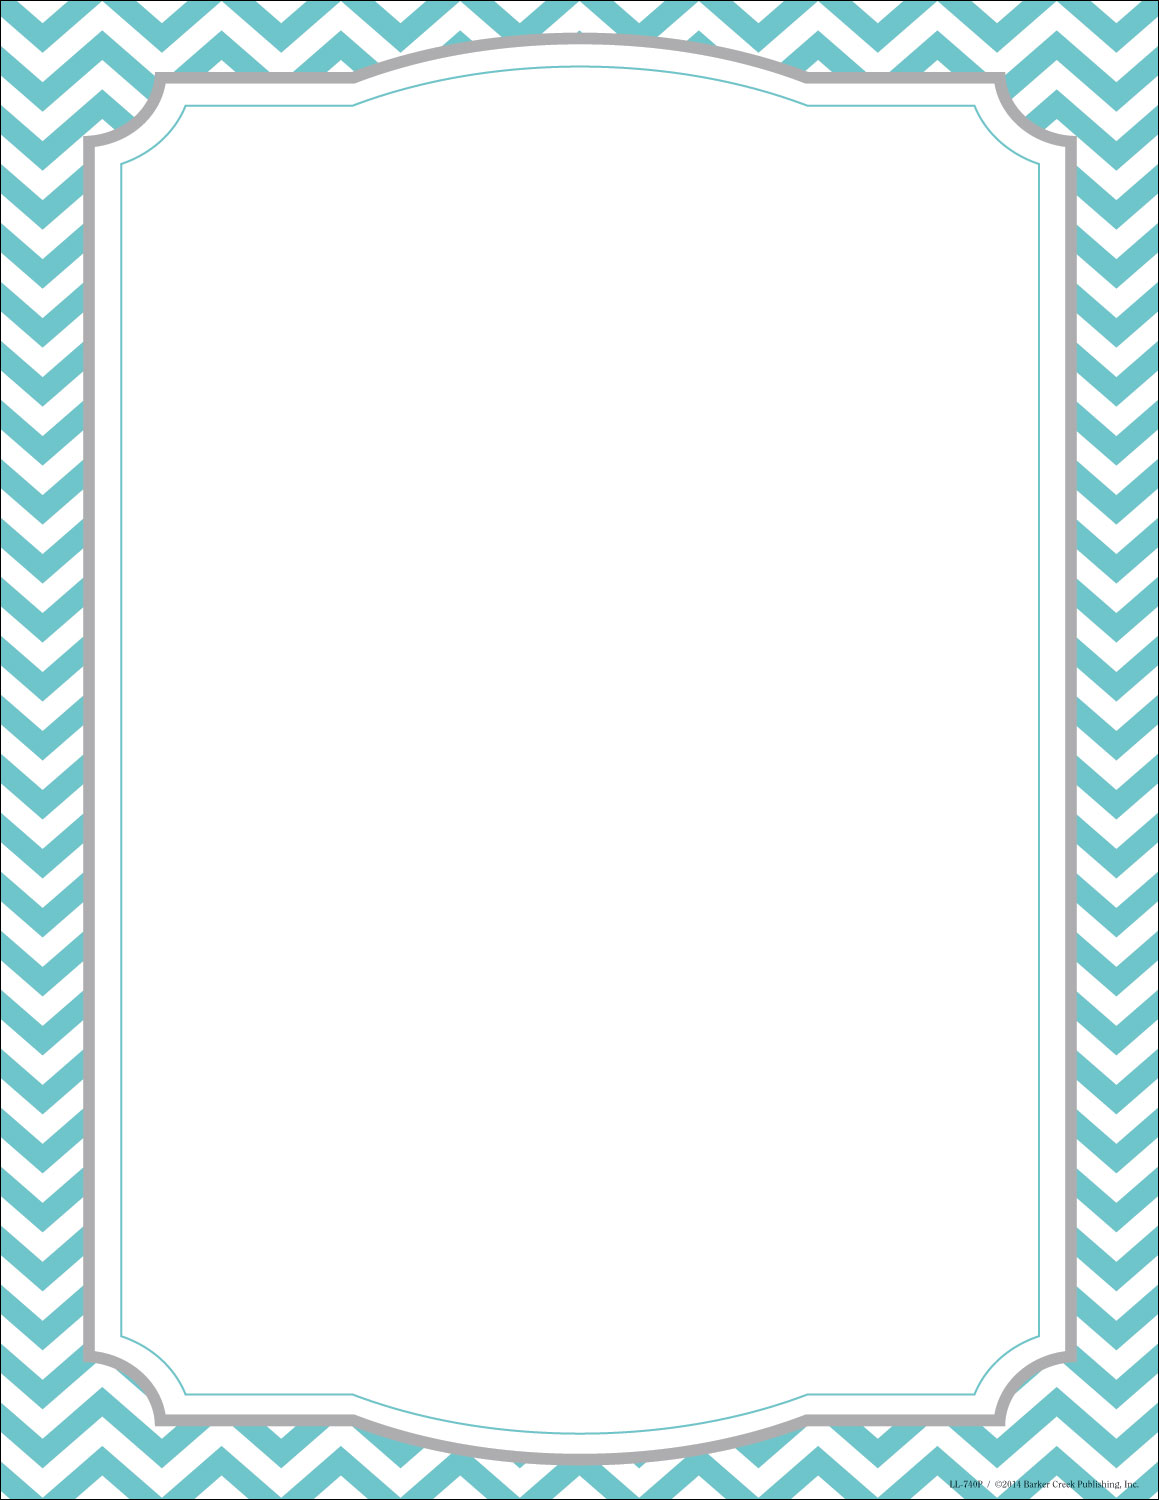 Chevron outline clipart graphic library library Free Chevron Frame Cliparts, Download Free Clip Art, Free Clip Art ... graphic library library